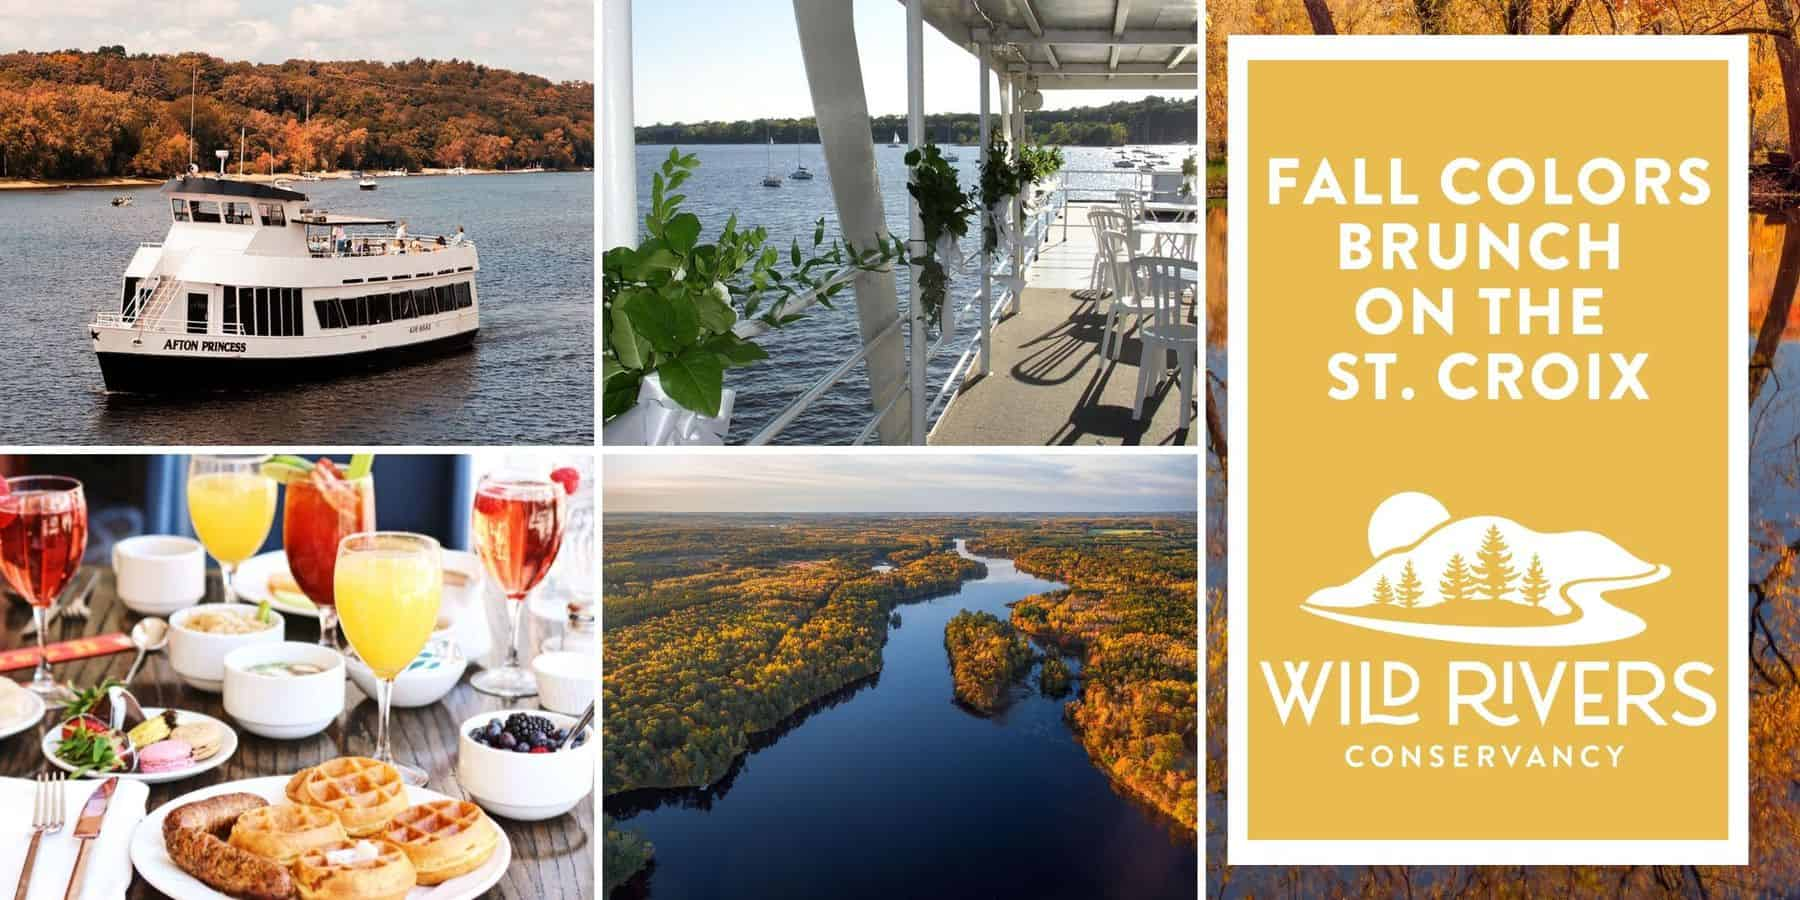 Fall Colors Brunch Cruise